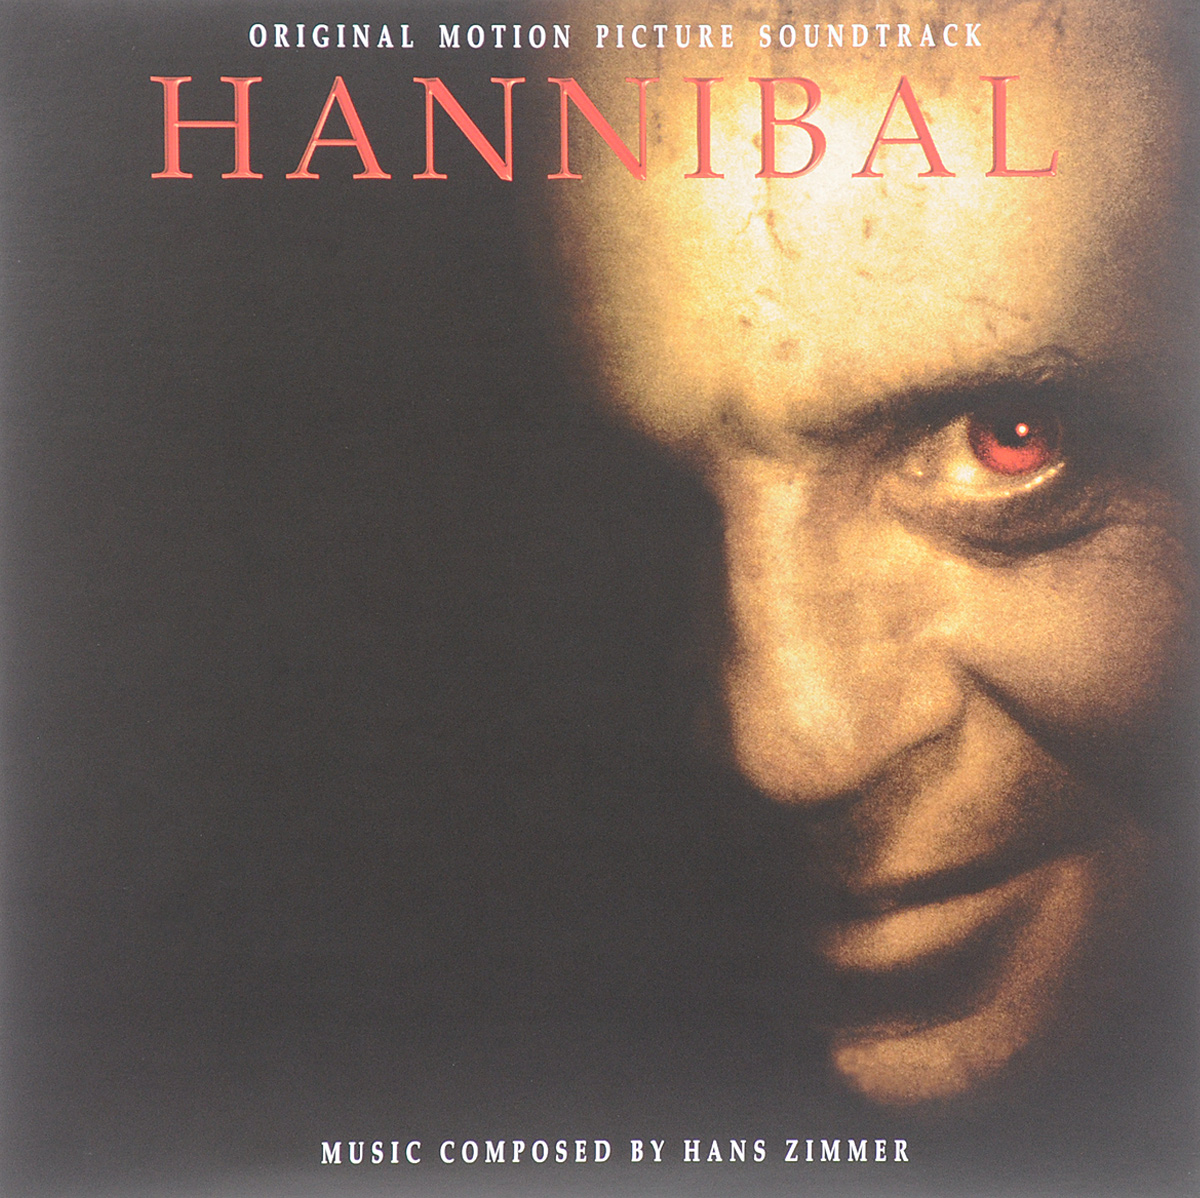 Энтони Хопкинс,Ганс Циммер Hannibal. Original Motion Picture Soundtrack (LP) django unchained original motion picture soundtrack 2 lp